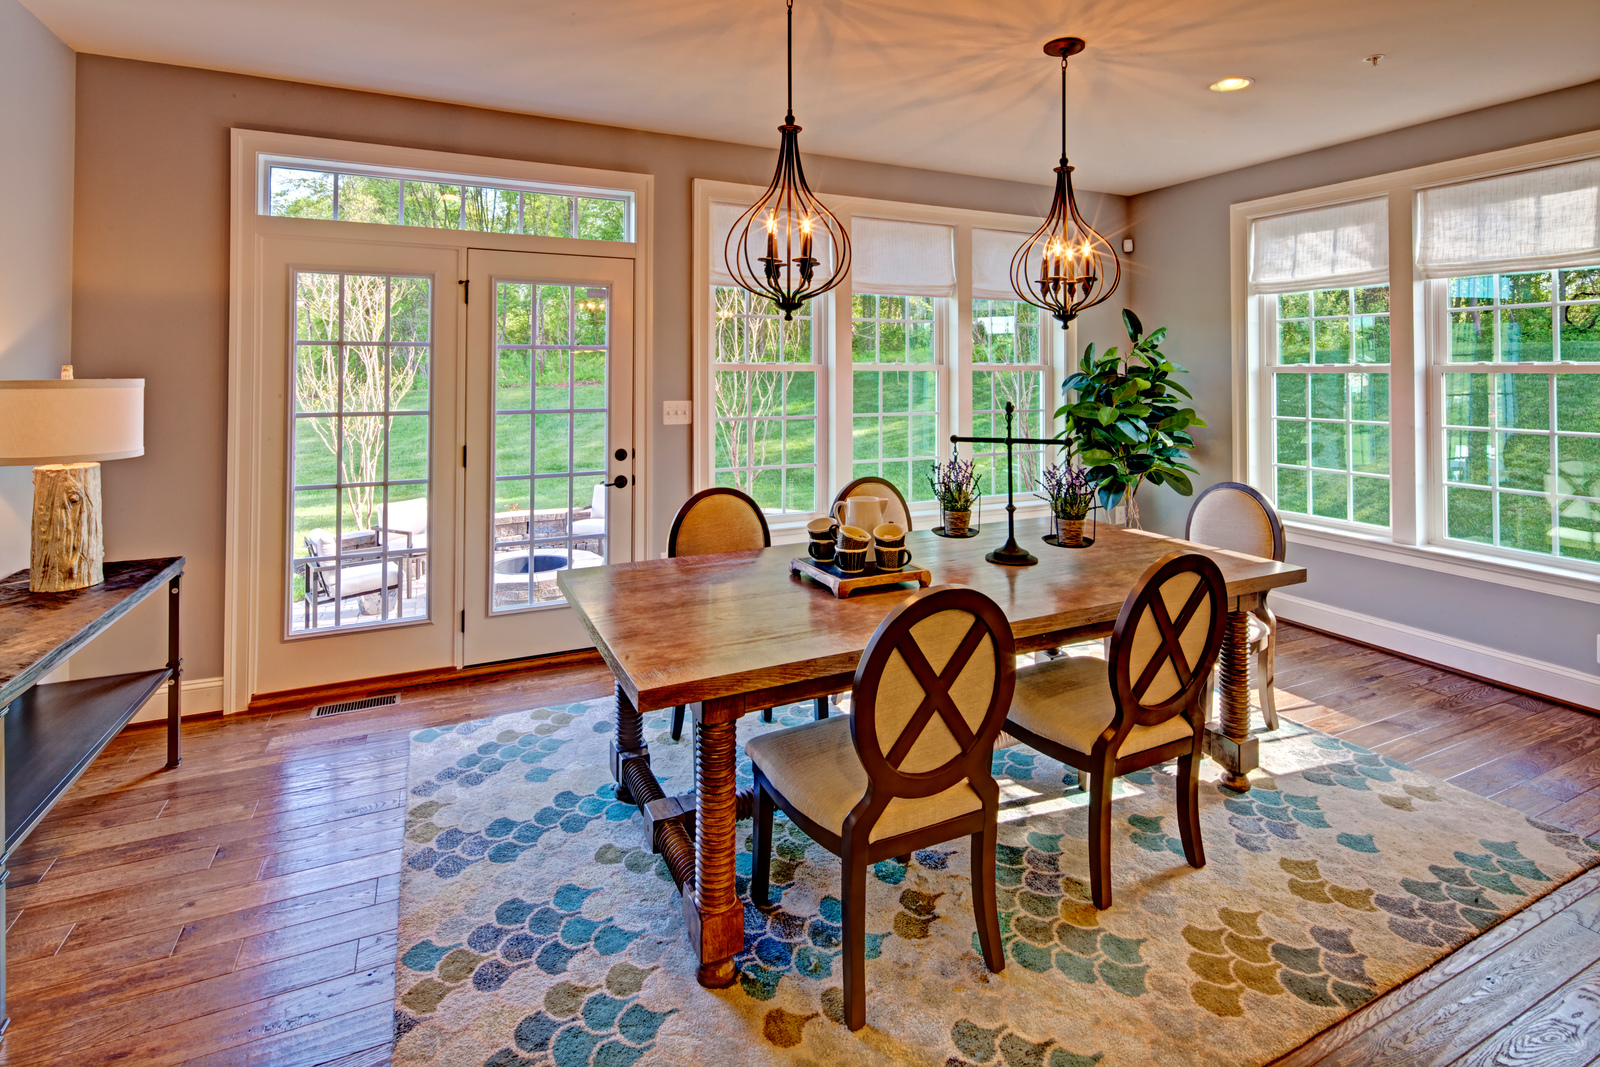 The formal Dining Room is a wonderful place to entertain friends and family for holidays and events.